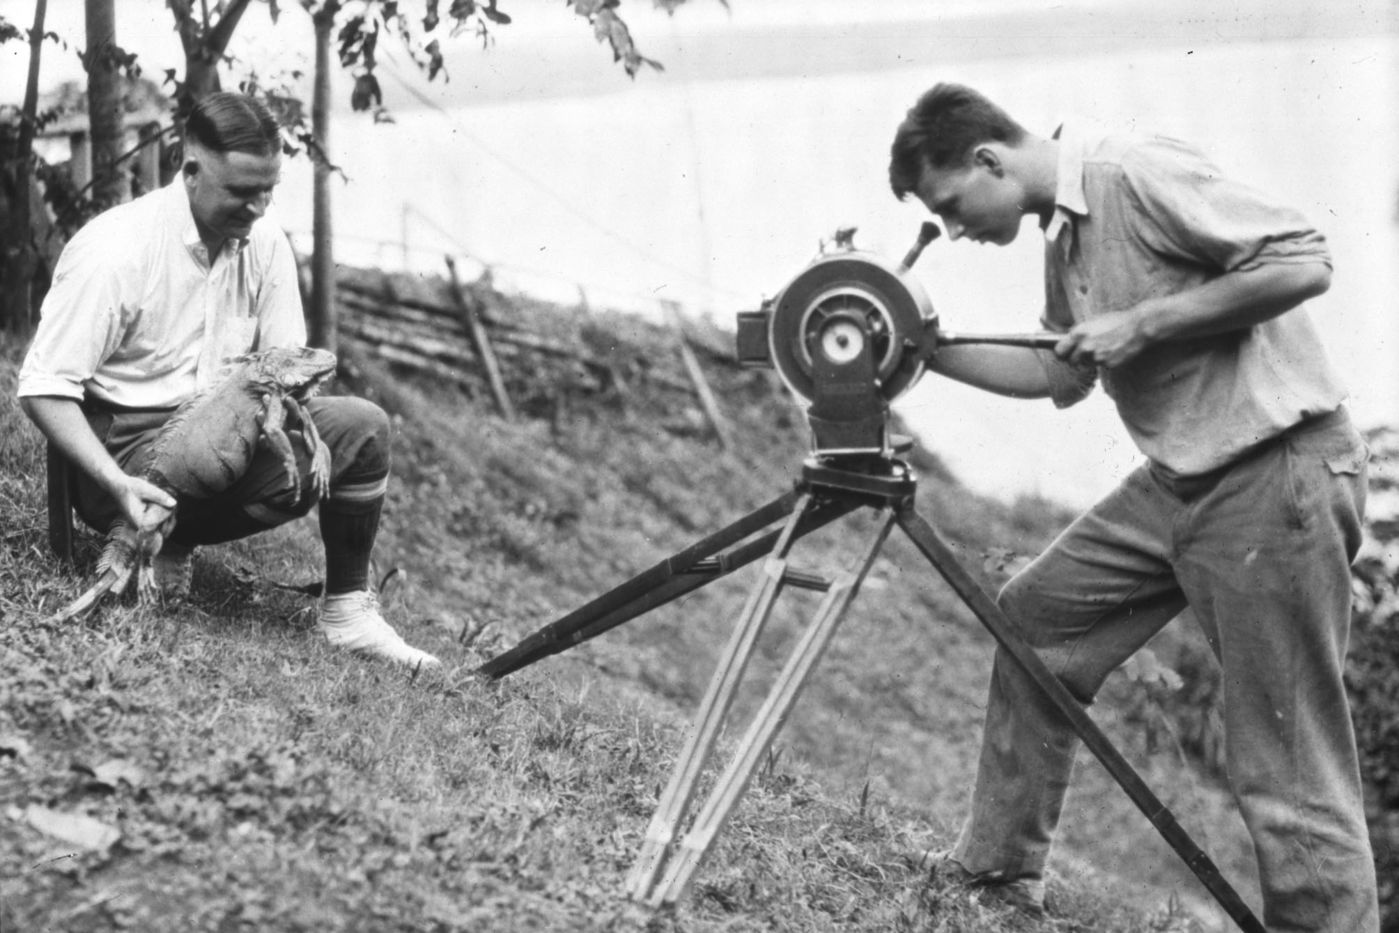 A man bends over the Akeley portable movie camera, looking into the eyepiece. He films another man who is kneeling on the grass and holding an iguana.